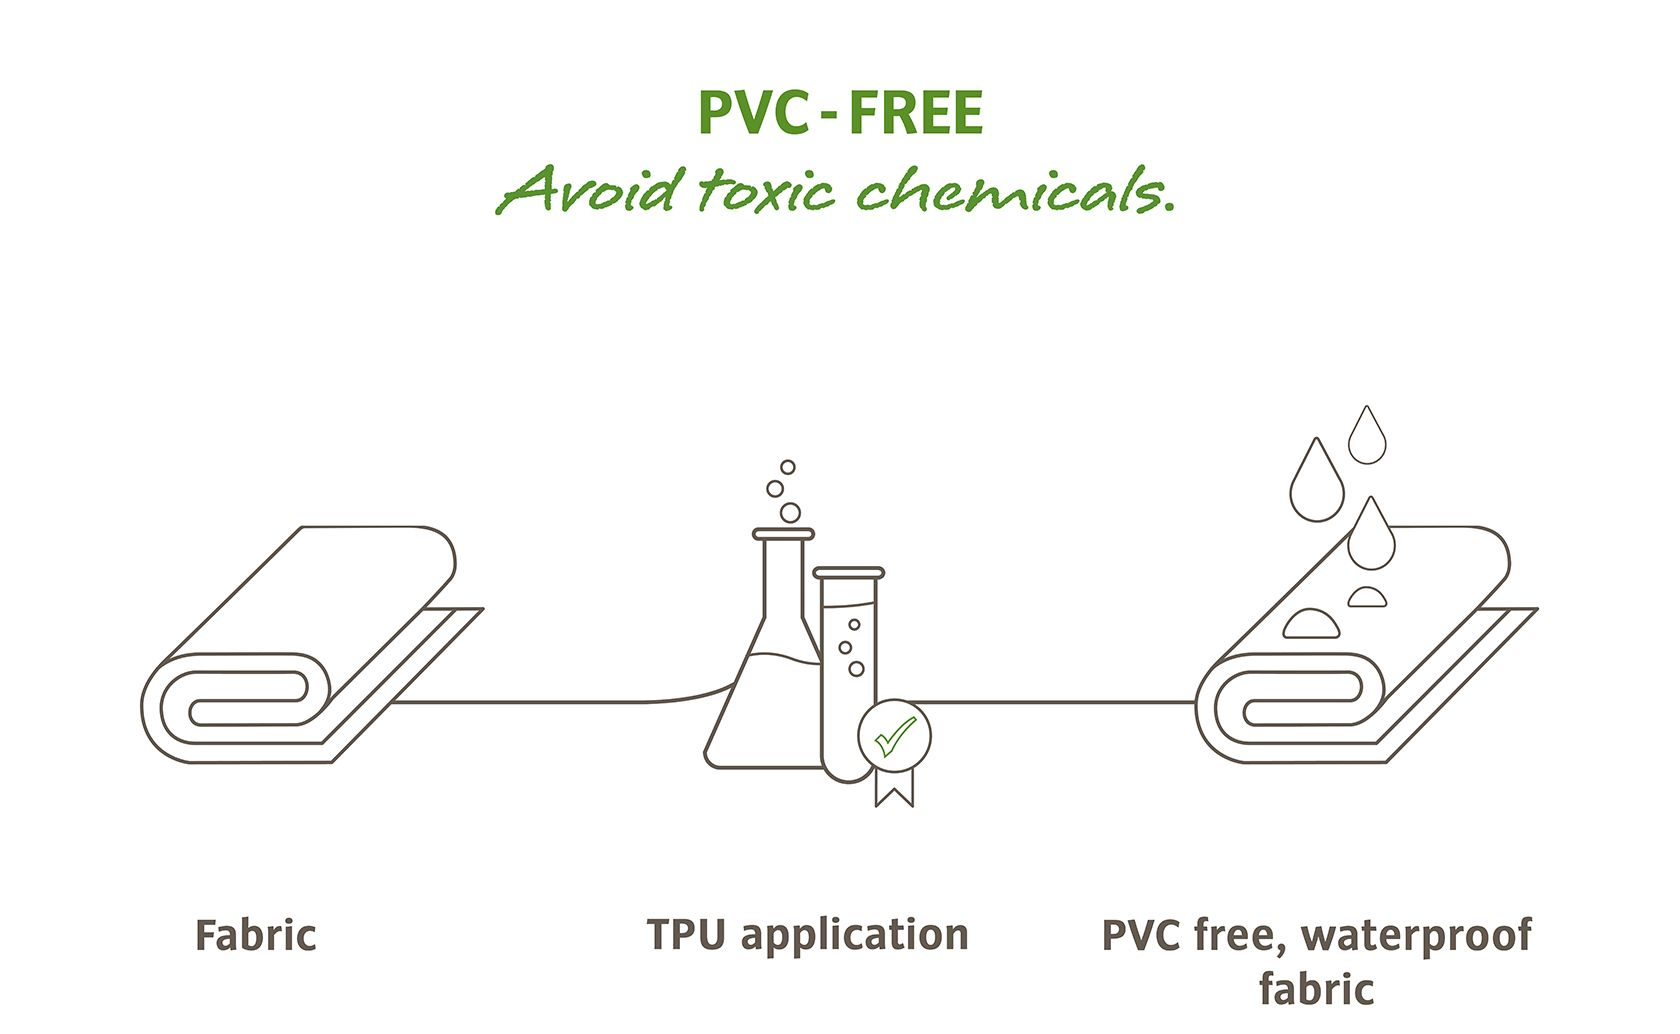 PVC Free